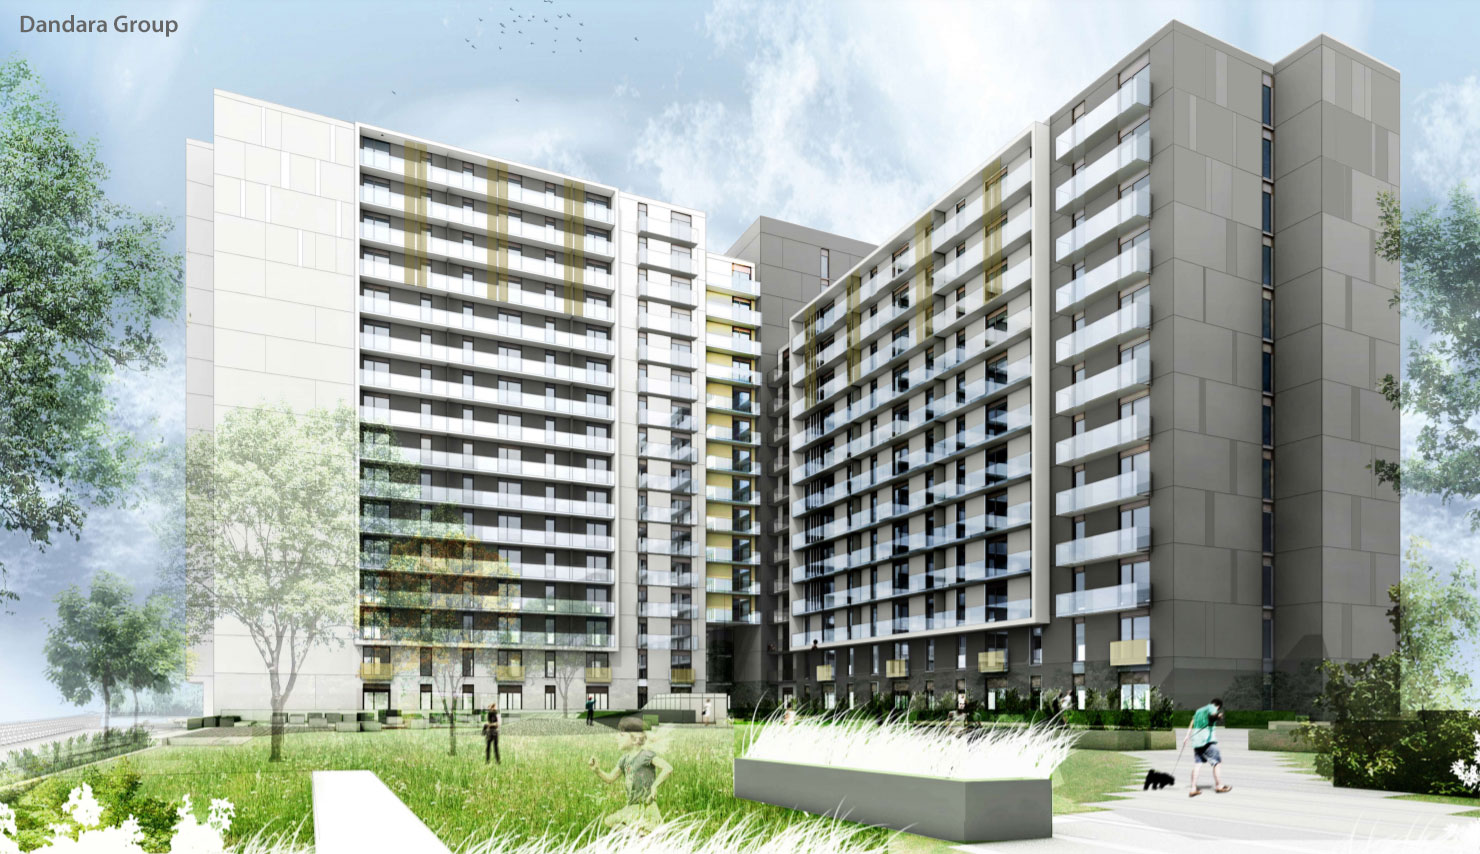 SIXTEEN-Floor Block With Hundreds Of Apartments Progressing At Glasgow Harbour